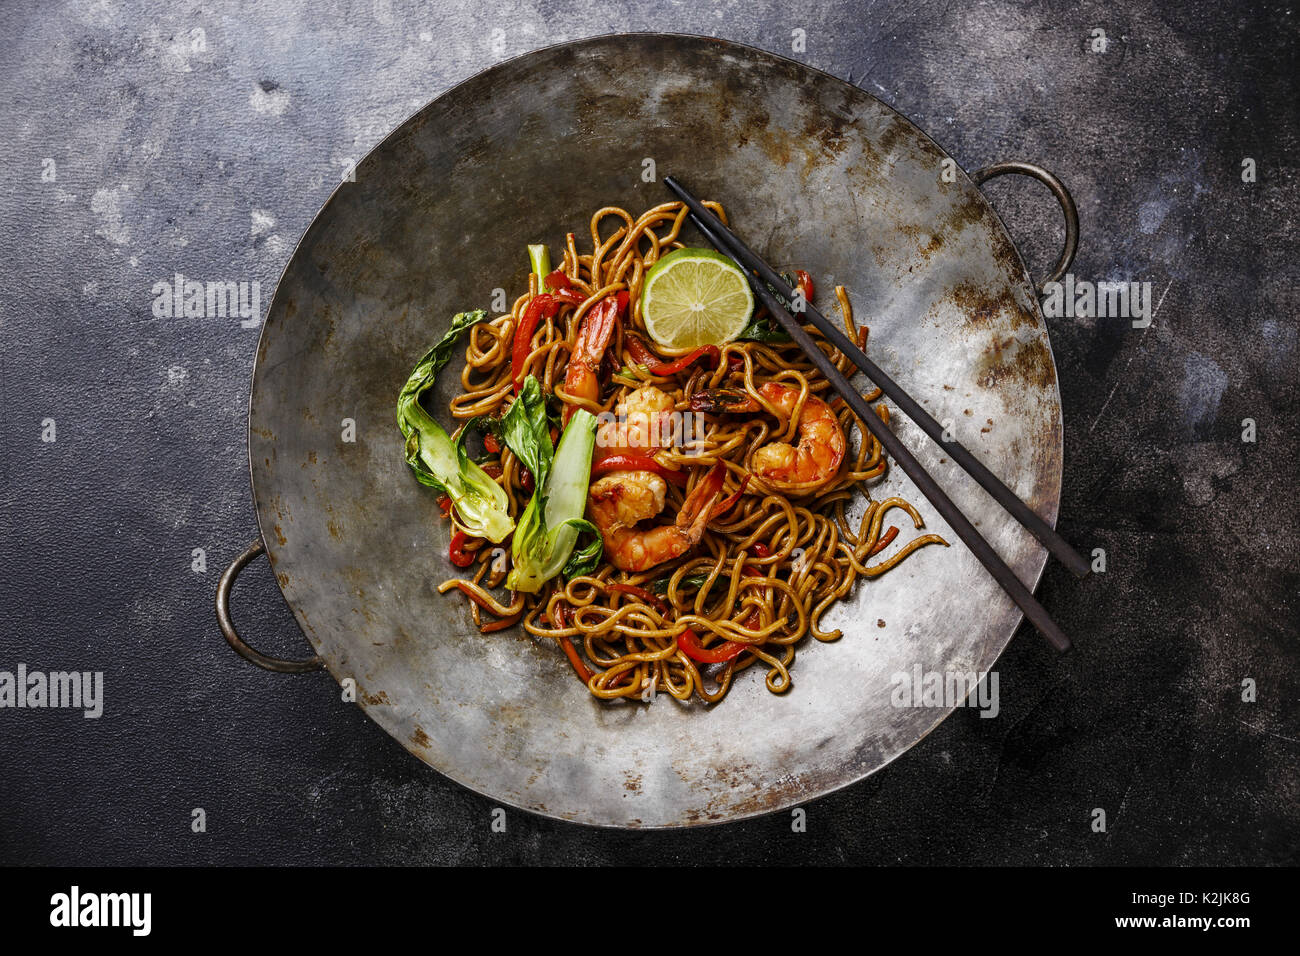 Udon noodles stir-fried with Tiger shrimps and vegetable in wok cooking pan on dark background Stock Photo